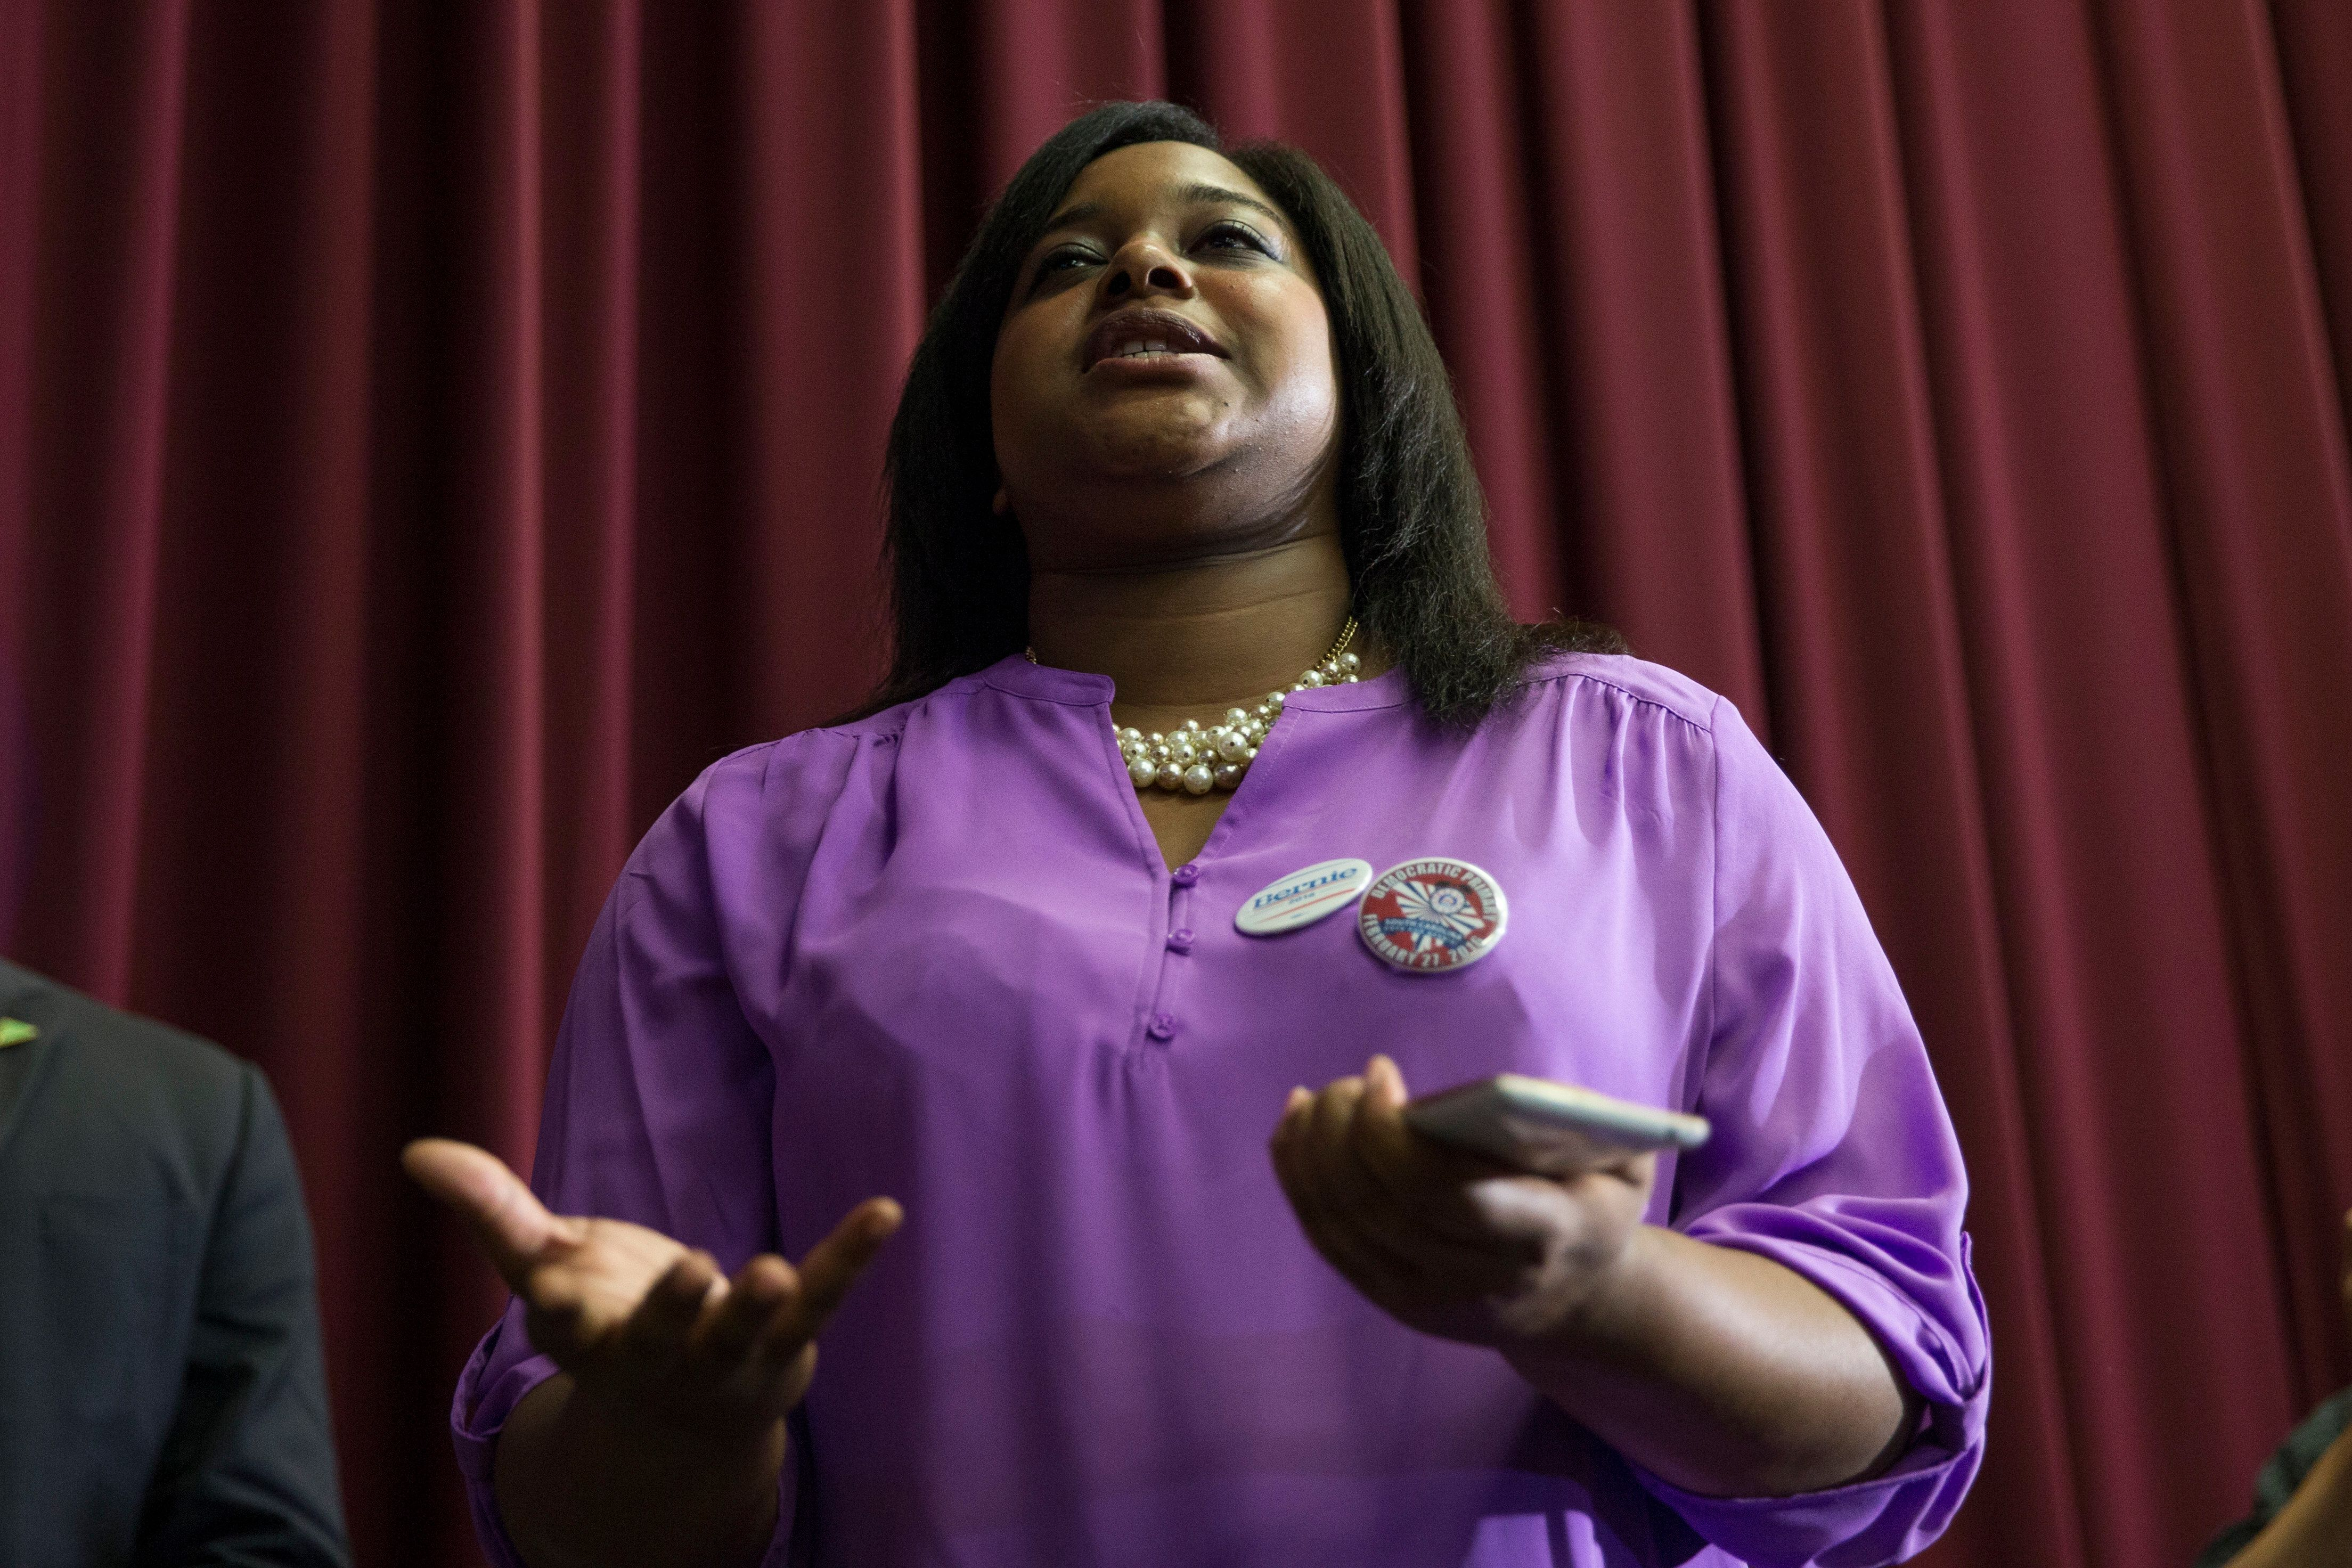 Erica Garner, daughter of Eric Garner, who was killed by New York City police, asks a question of Democratic presidential candidate Sen. Bernie Sanders, I-Vt., during a town hall at the University of South Carolina, on Tuesday, Feb. 16, 2016, in Columbia, S.C. (AP Photo/Evan Vucci)